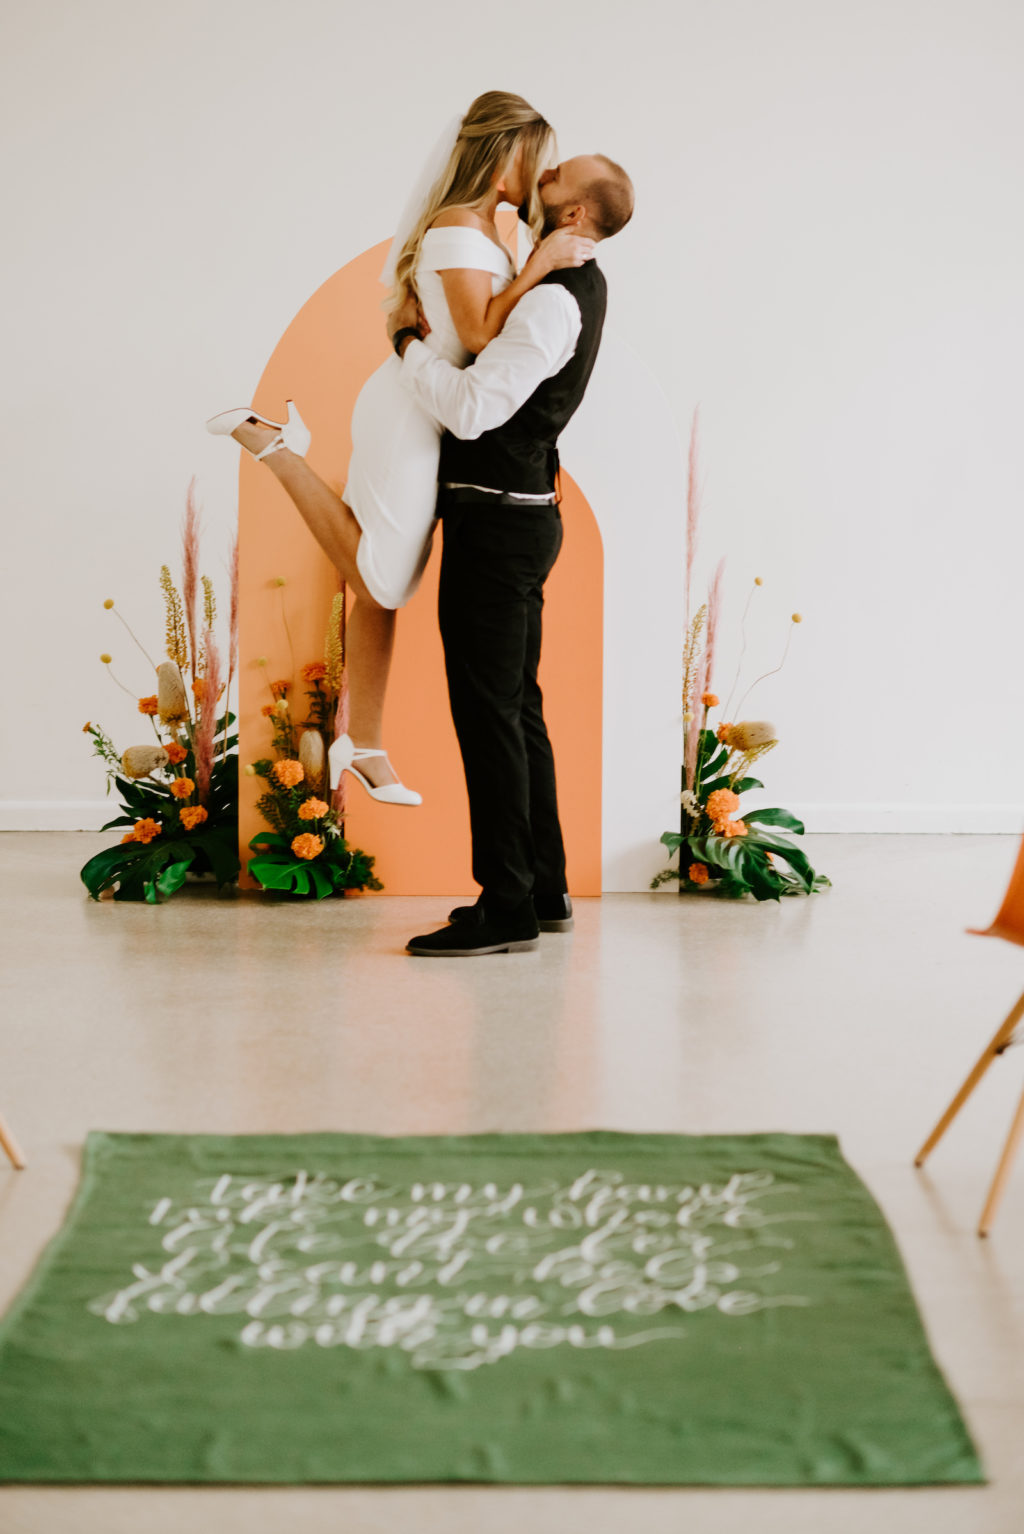 Retro Mid Century Modern Wedding Ceremony Bride and Groom Exchanging Kiss After Wedding Vows, Orange and White Geometric Arch, Monstera Palm Leaves, Orange Marigolds, Pampas Grass Flower Arrangements, Green Carpet with Script White Quote Aisle Runner Wedding Venue Tampa Garden Club